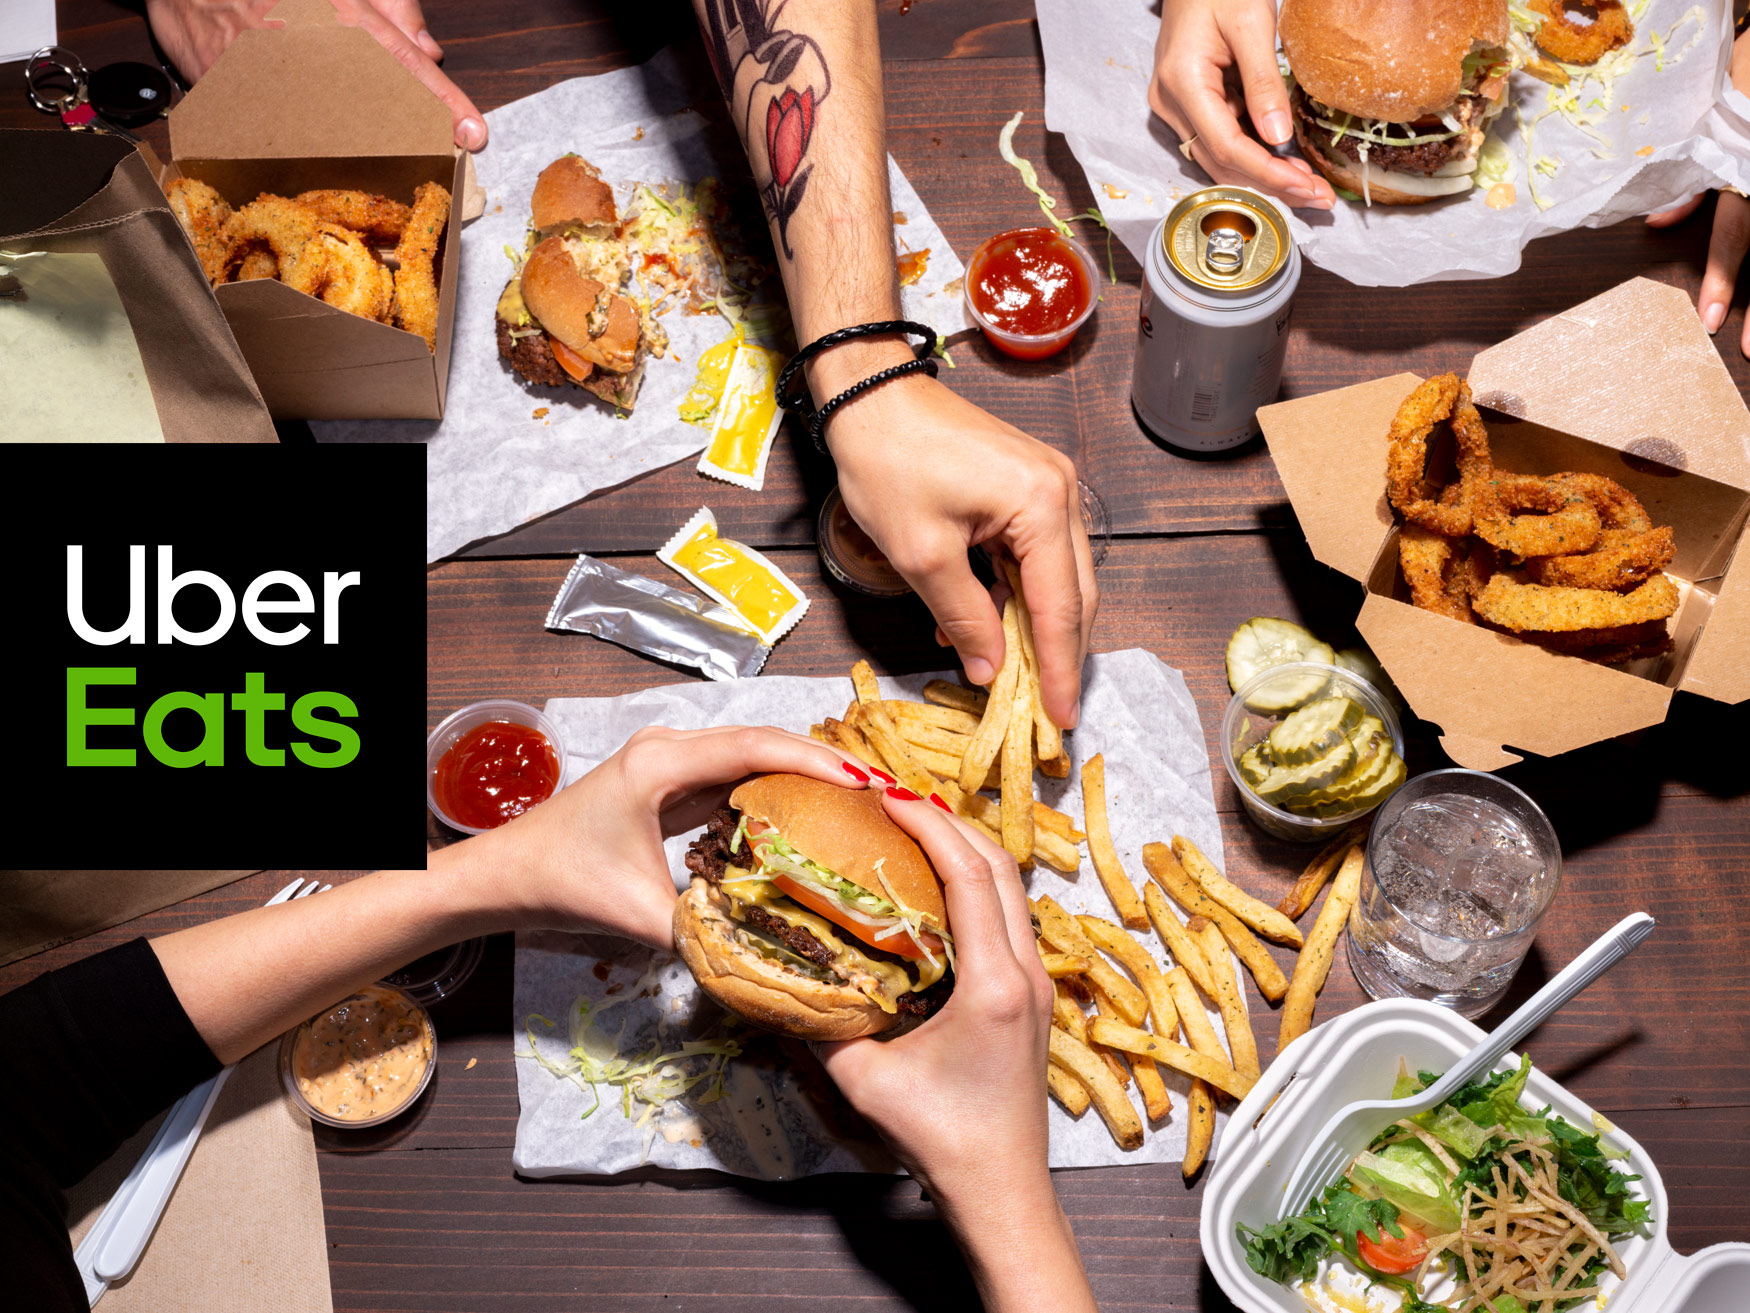 190216_JM_UBEREATS_03_FRIES_BURGER_0315-ad-website